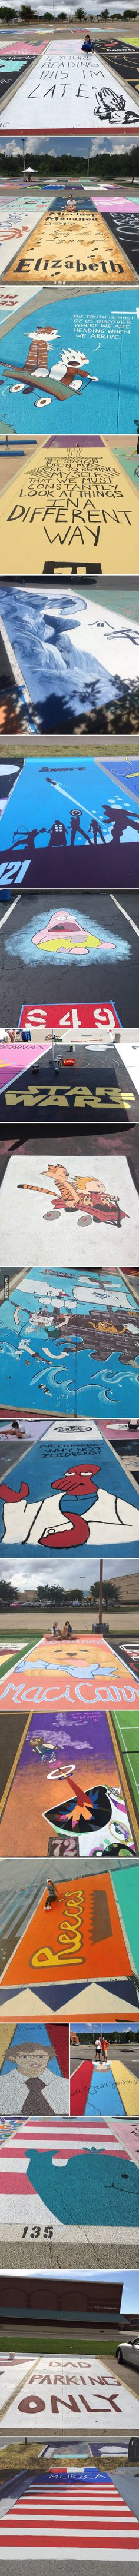 High school students painting their own parking spaces